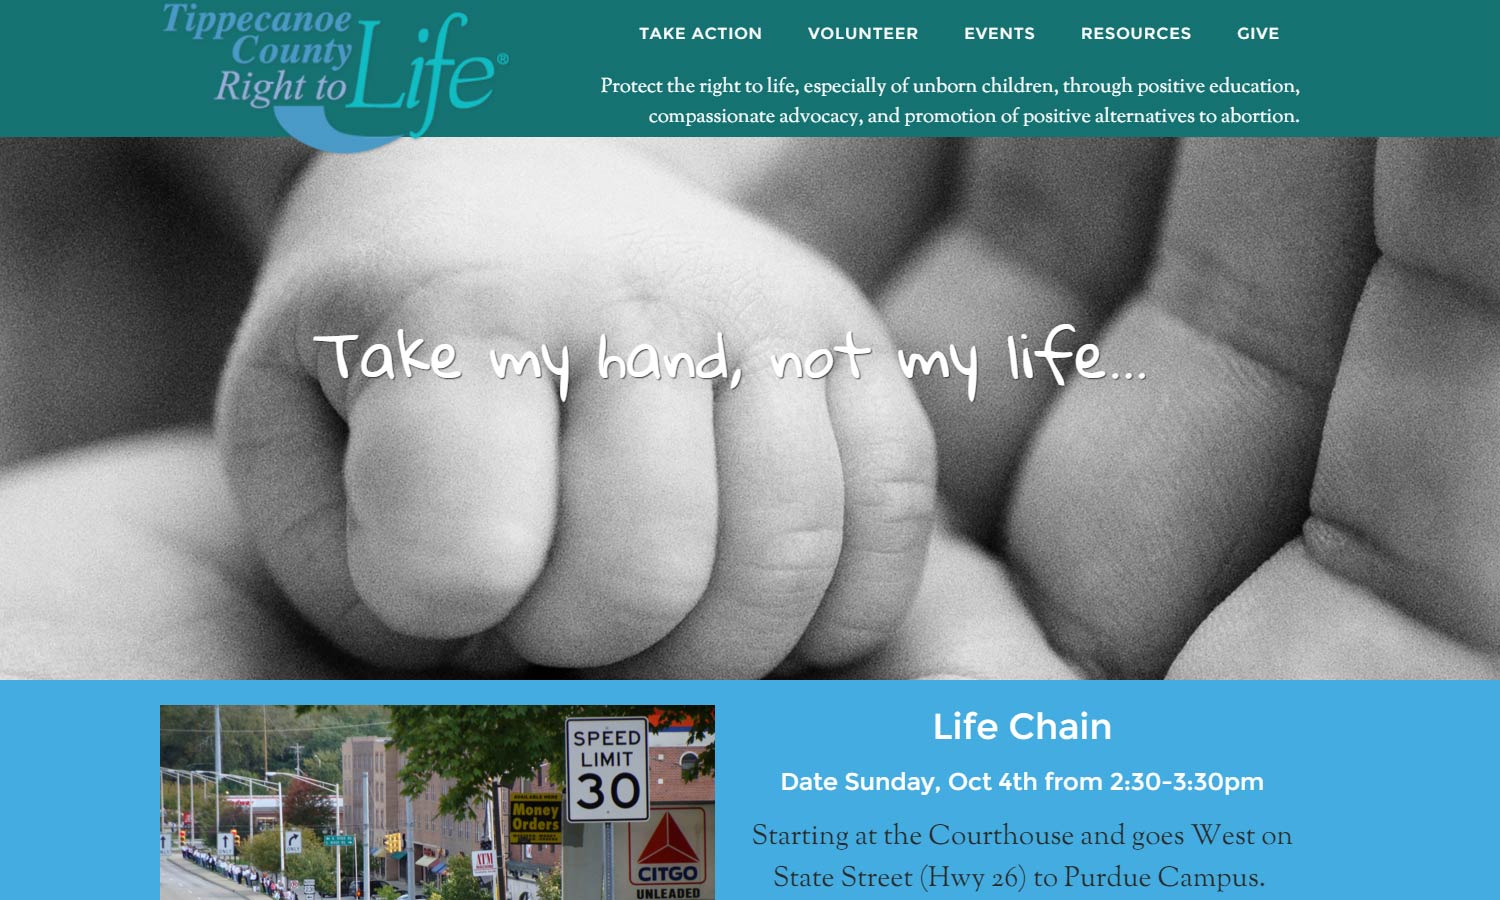 Tippecanoe County Right to Life